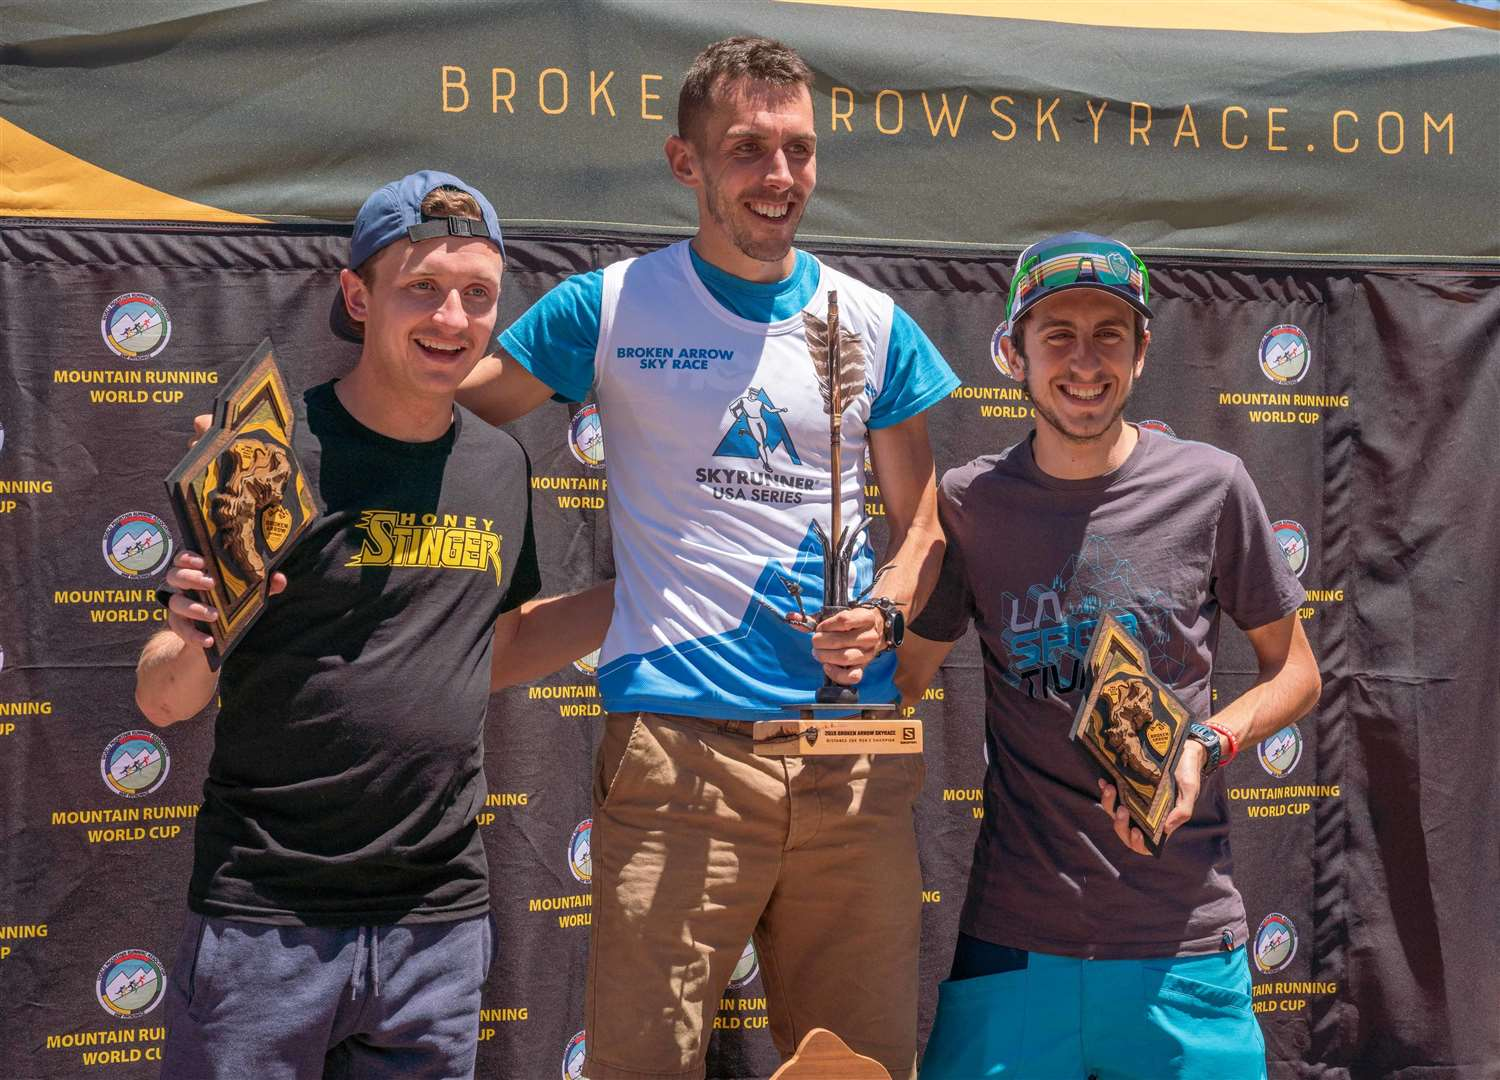 Andrew Douglas, flanked by Italian duo Martin (right) and Bernard Dematteis earlier this season in California at round two of the Mountain Running World Cup series. The trio could make up the same podium finish once the season ends as Halkirk's Douglas inched closer to the world title last week. Picture: Broken Arrow Skyrace/Myke Hermsmeyer.